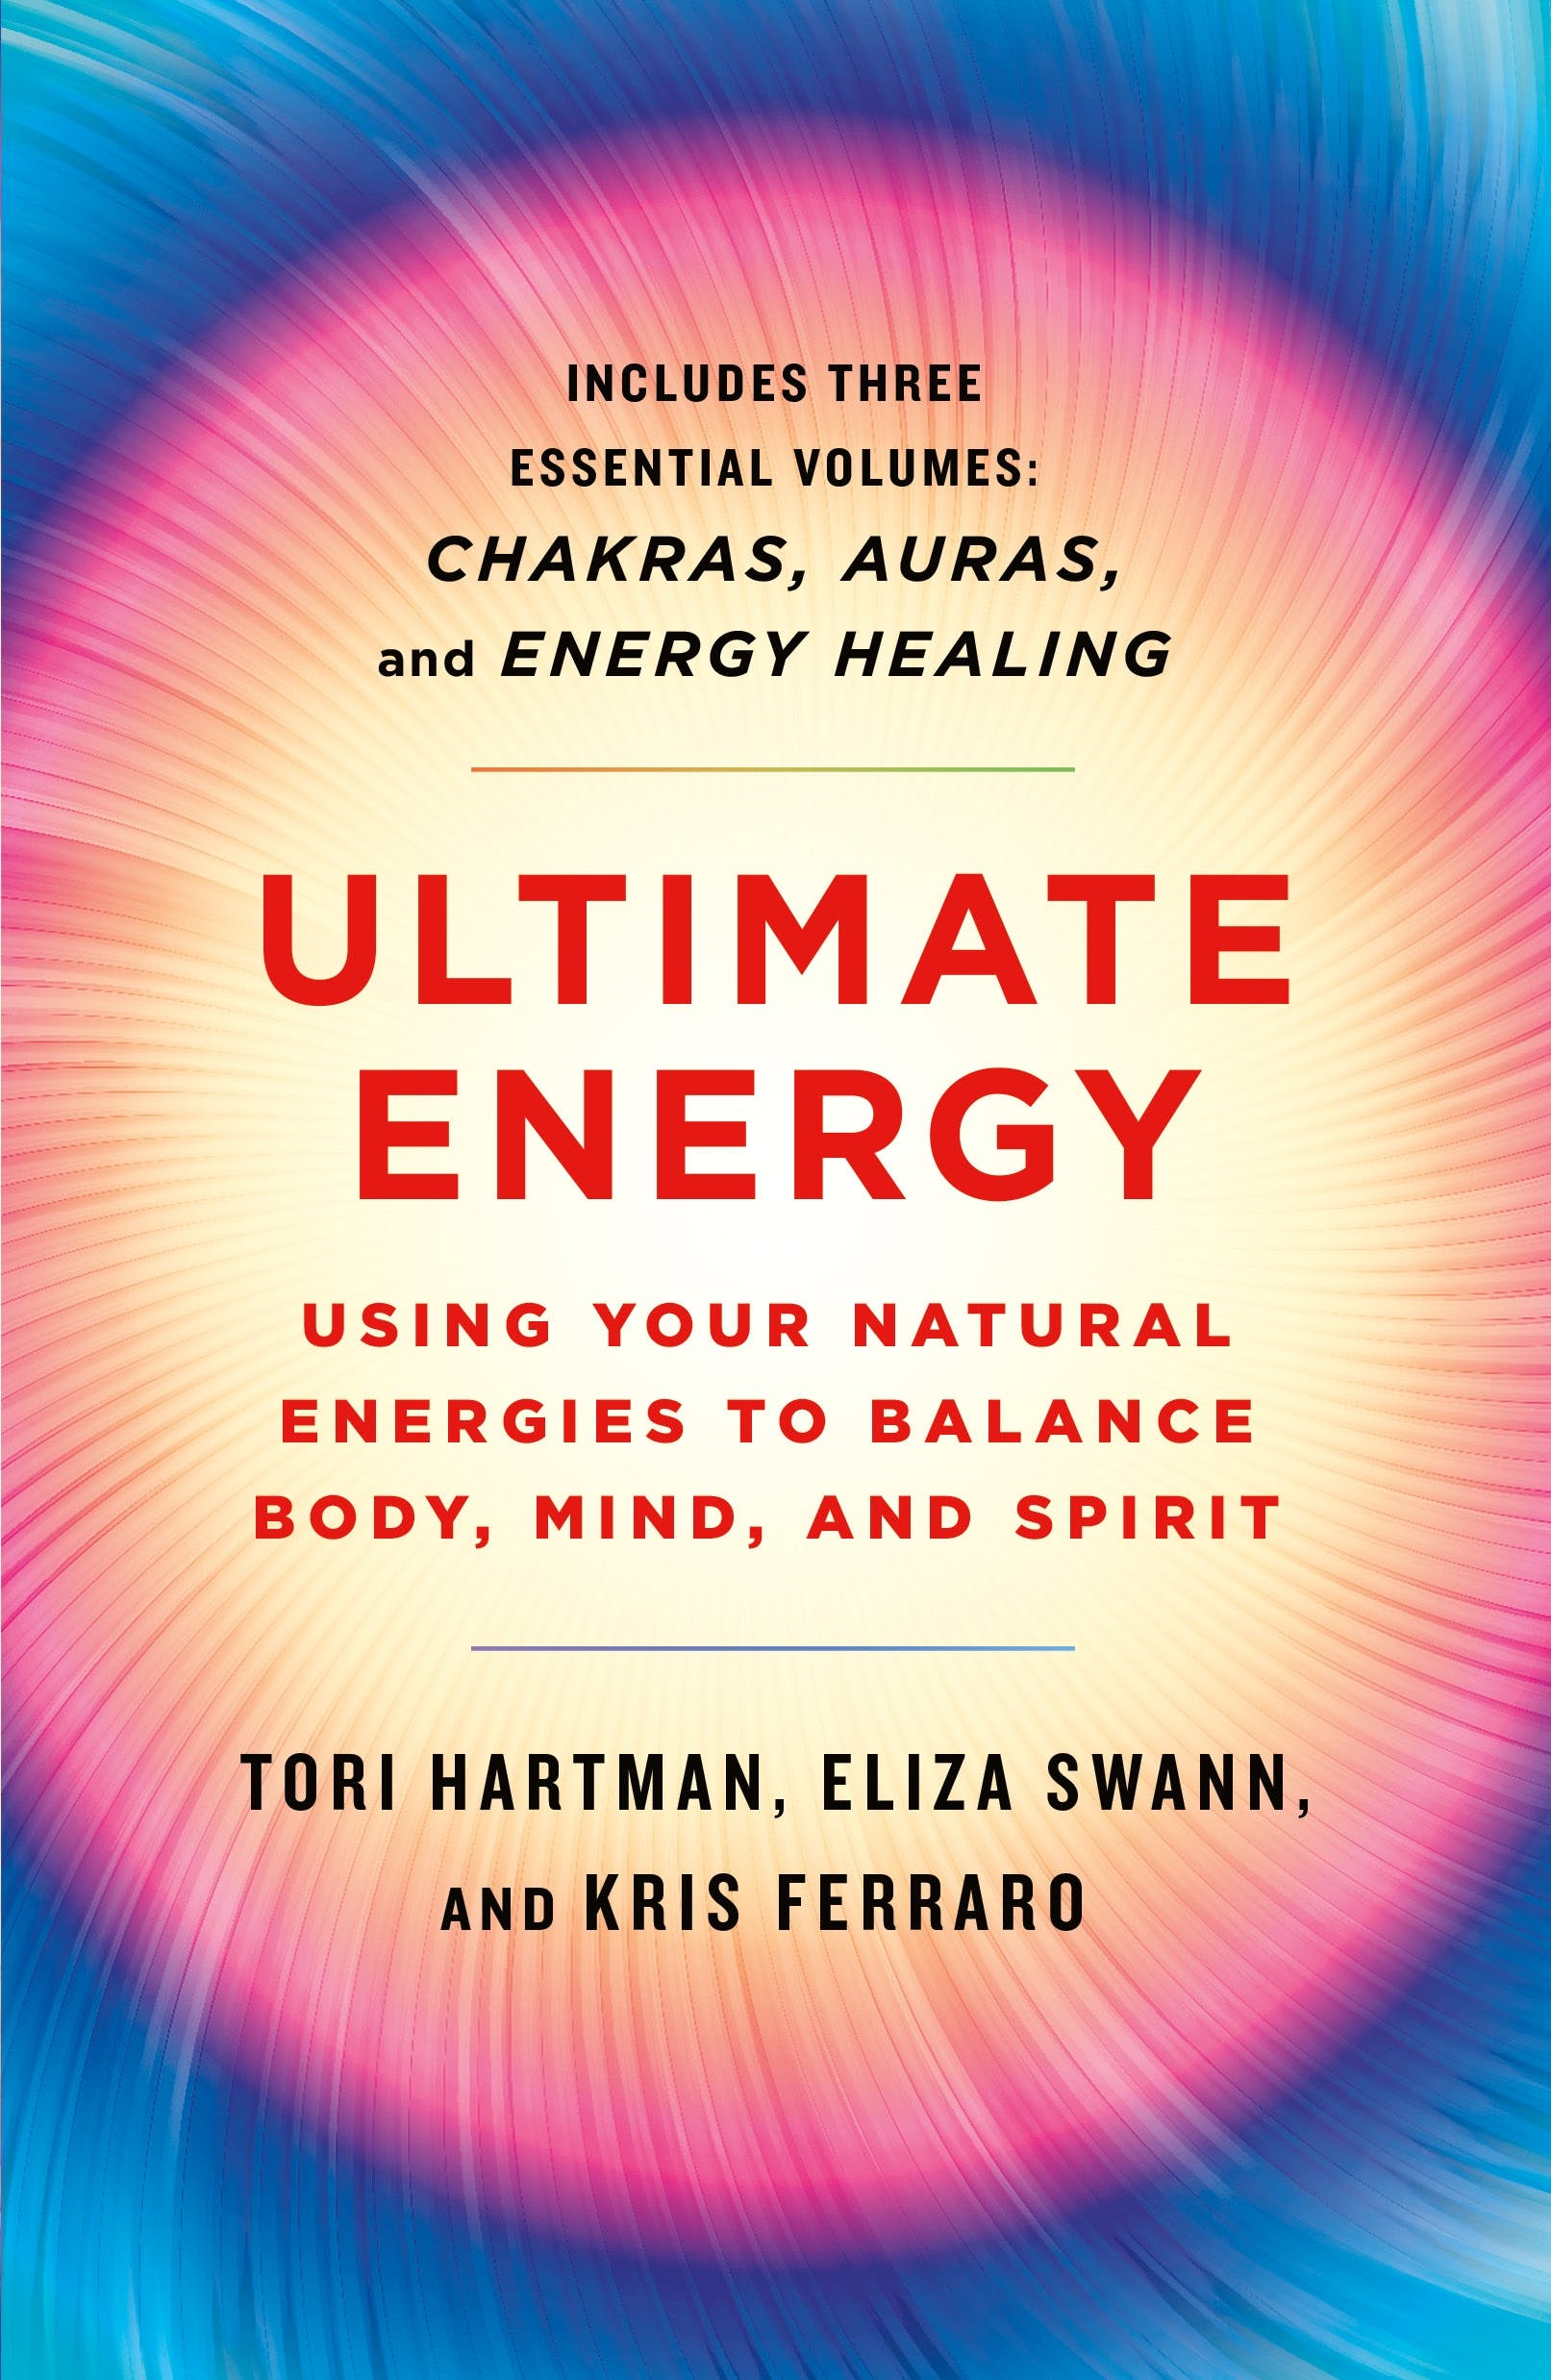 Image of Ultimate Energy: Using Your Natural Energies to Balance Body, Mind, and Spirit